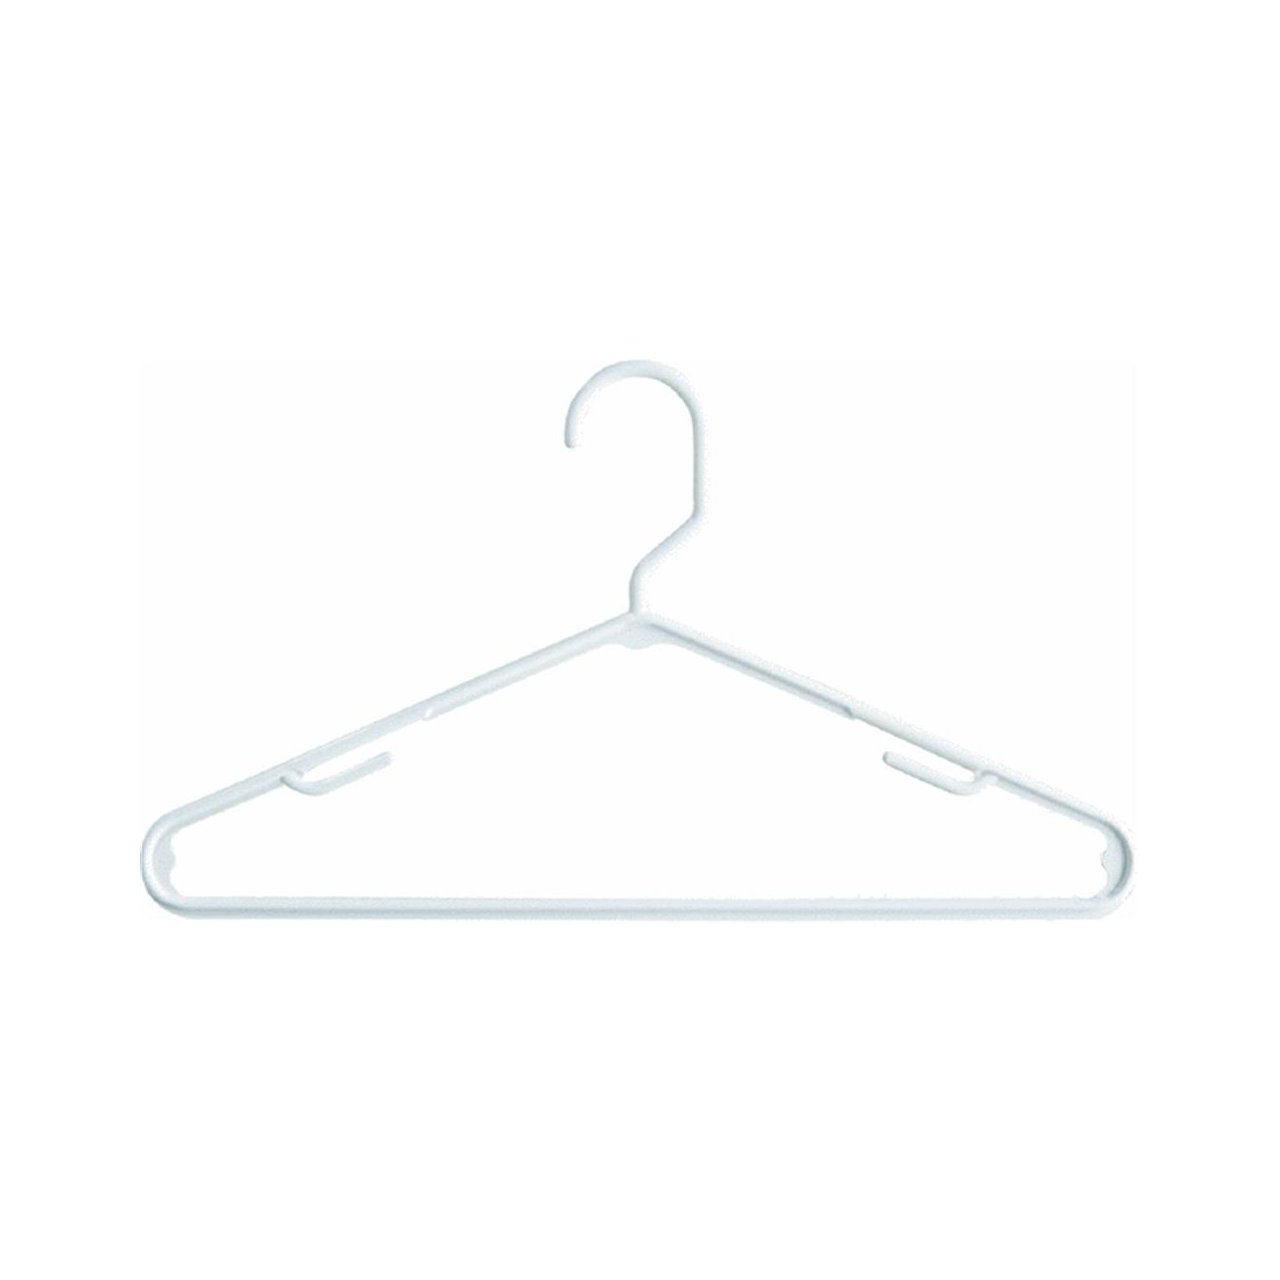 Tamor Plastics Corp Home Products International 6808WH10.14 Pack of 10 6808//10WH.14 Cheerful Tubular Plastic Clothes Hanger